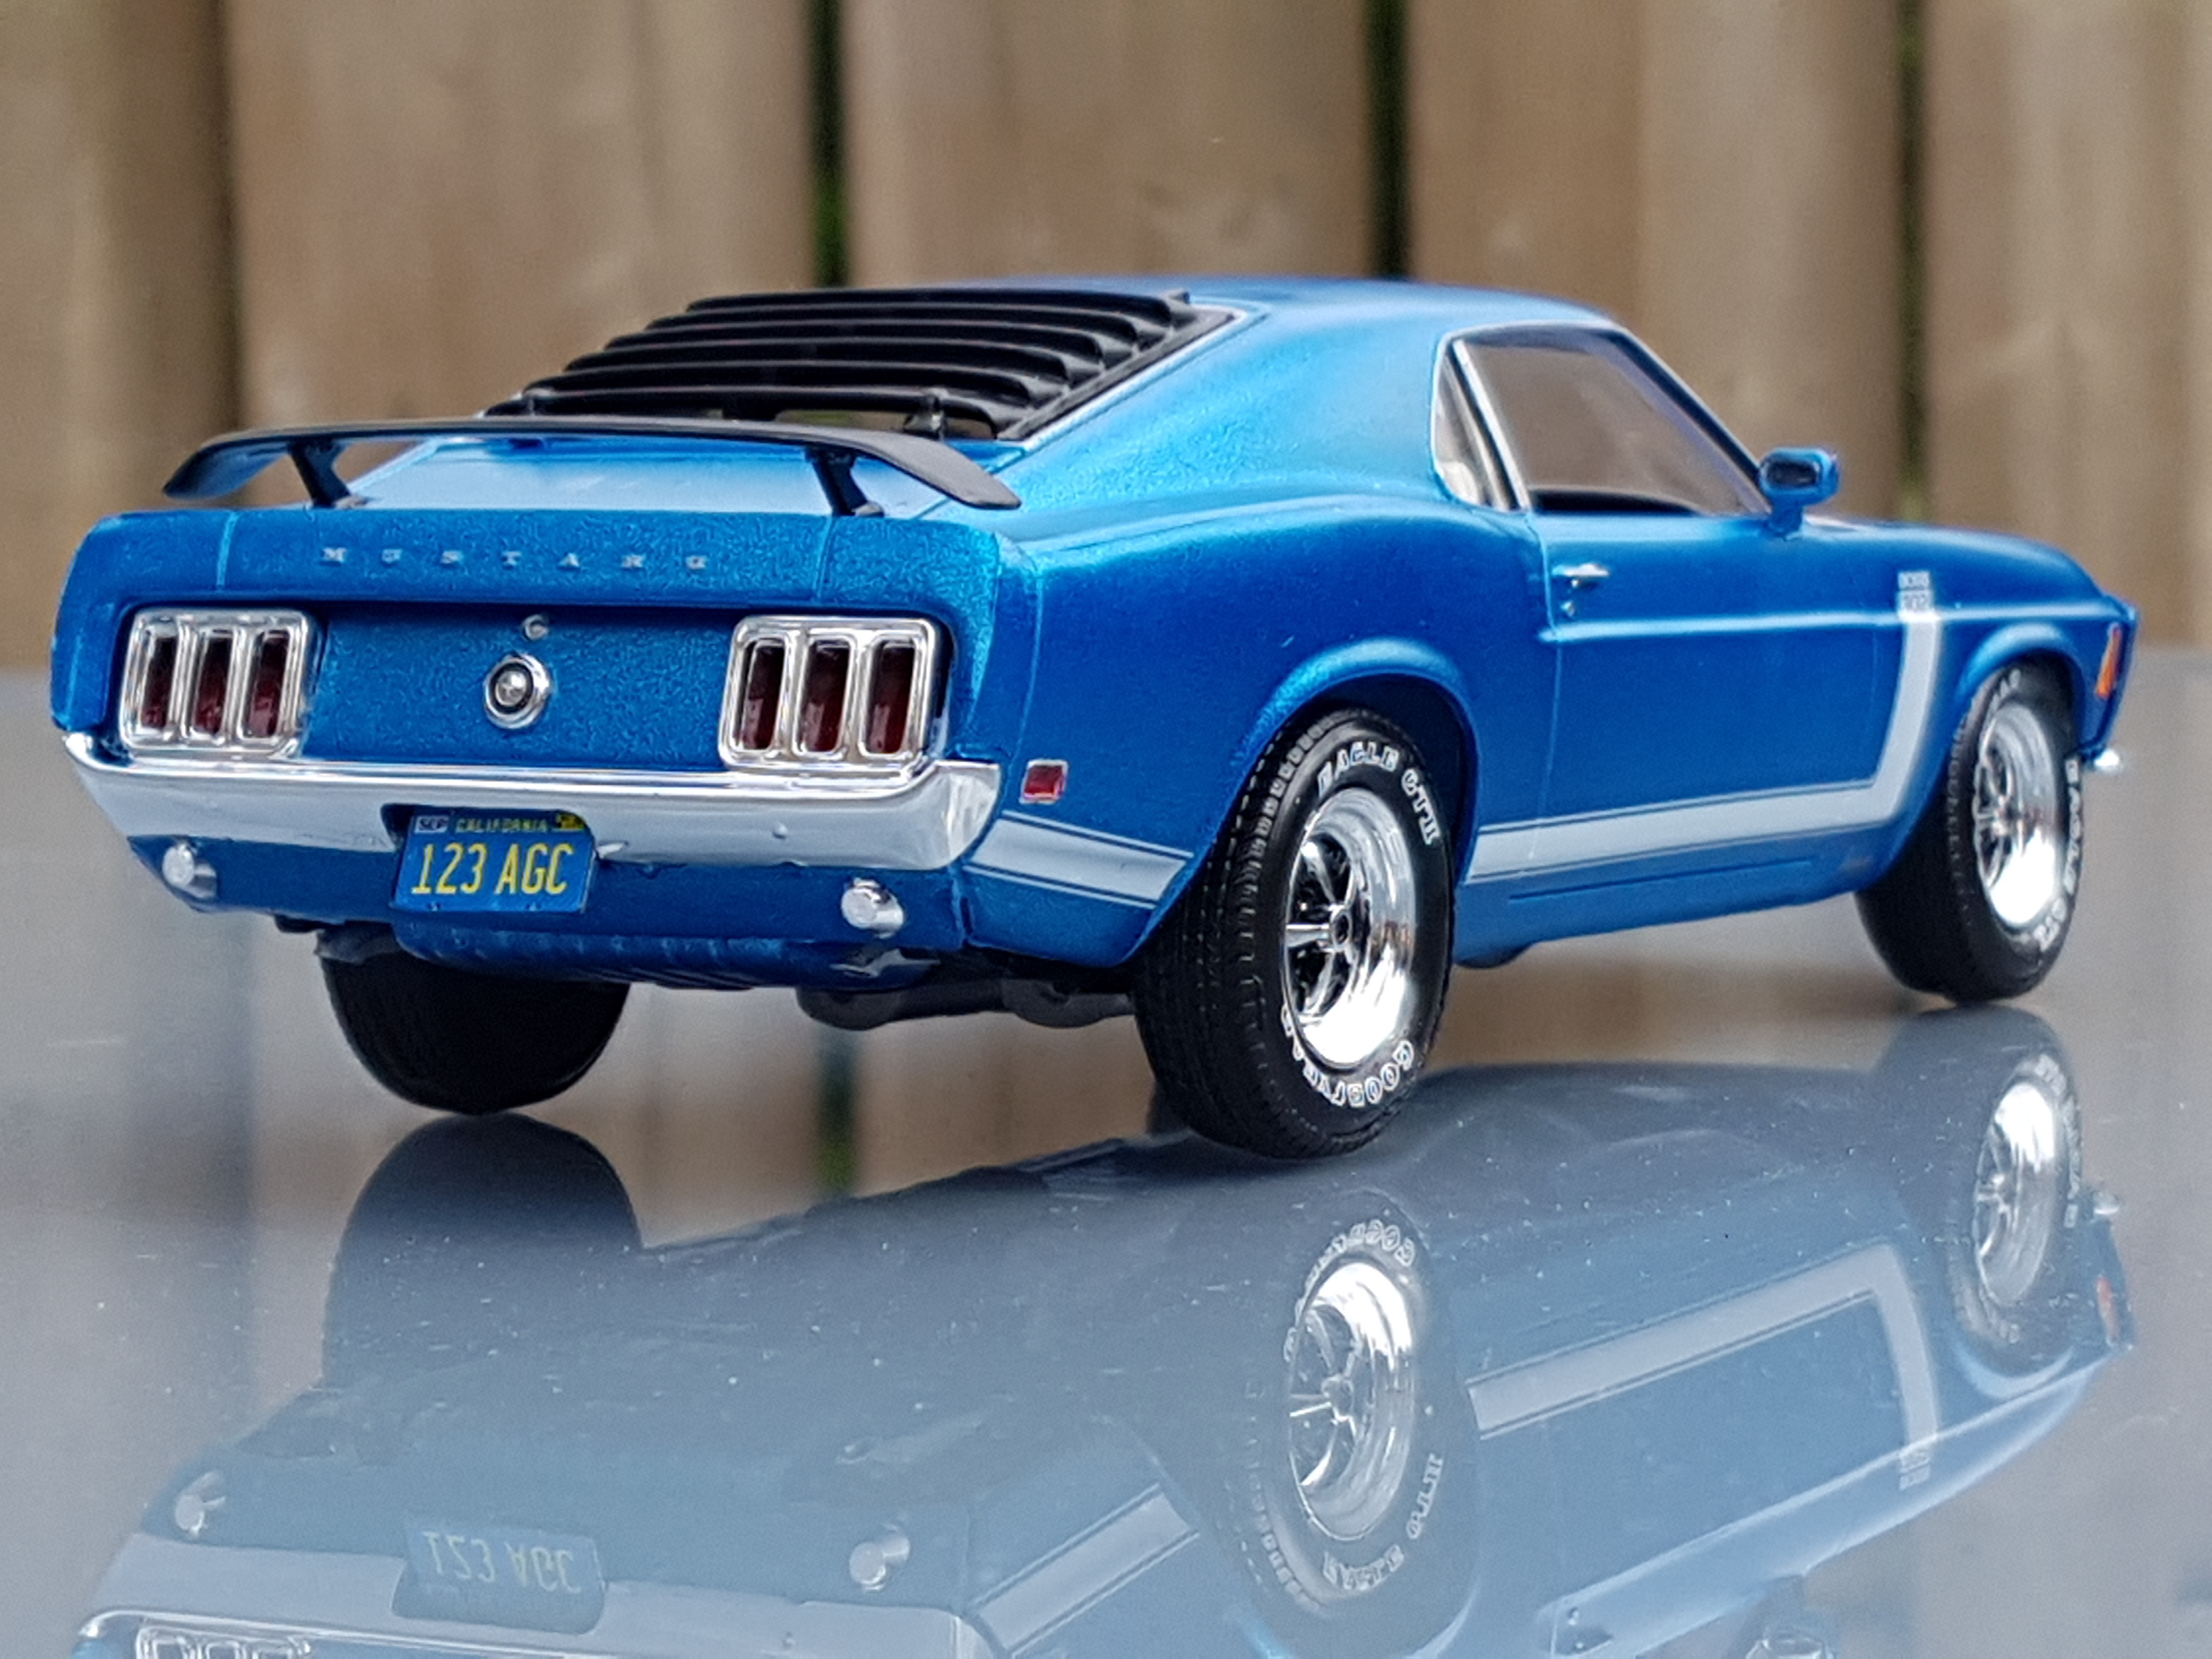 1970 Ford Mustang Boss 302 Revell Rays Kits